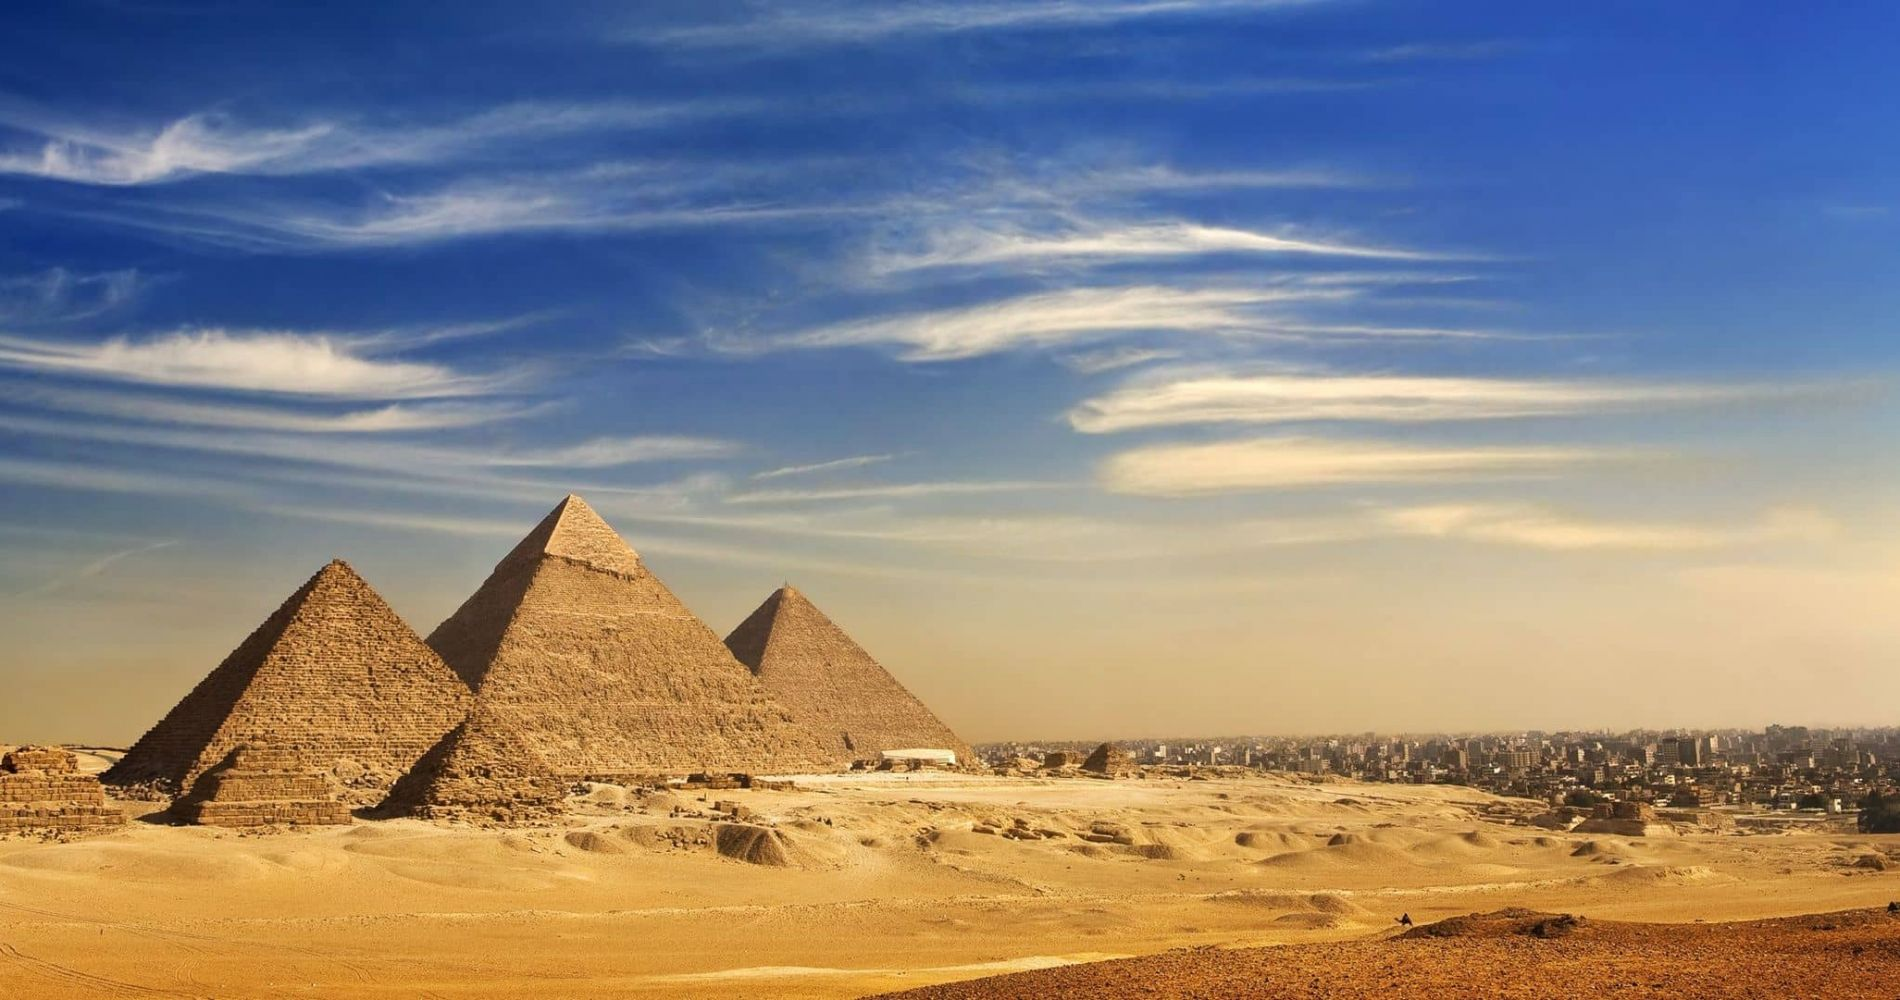 Giza Pyramids, Sphinx and Sakkara Experience in Egypt